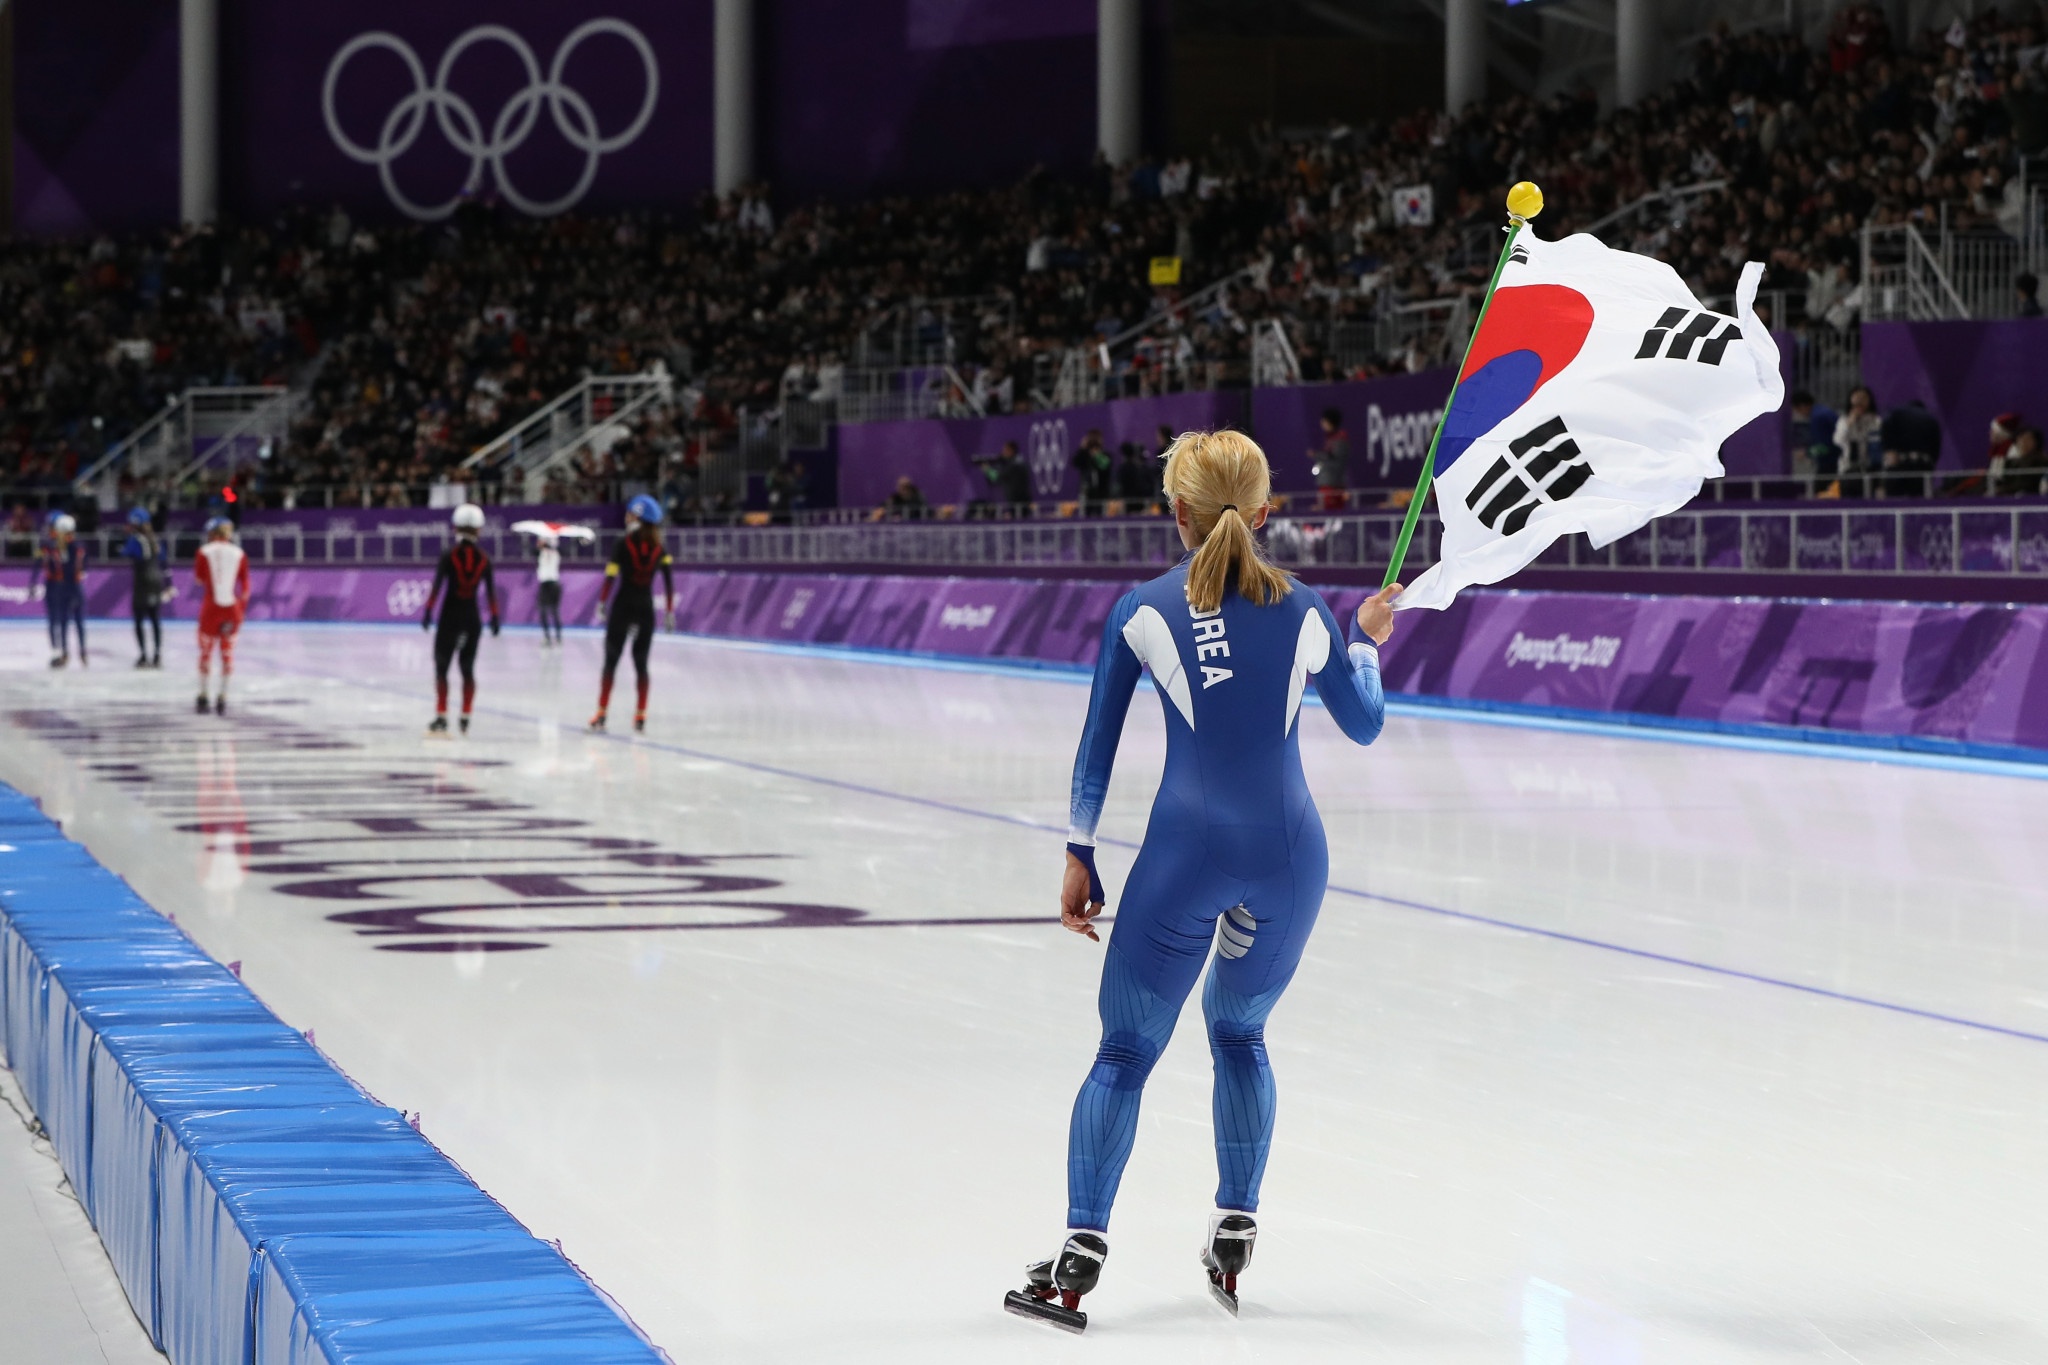 Speed skater at centre of Pyeongchang 2018 bullying controversy admitted to hospital